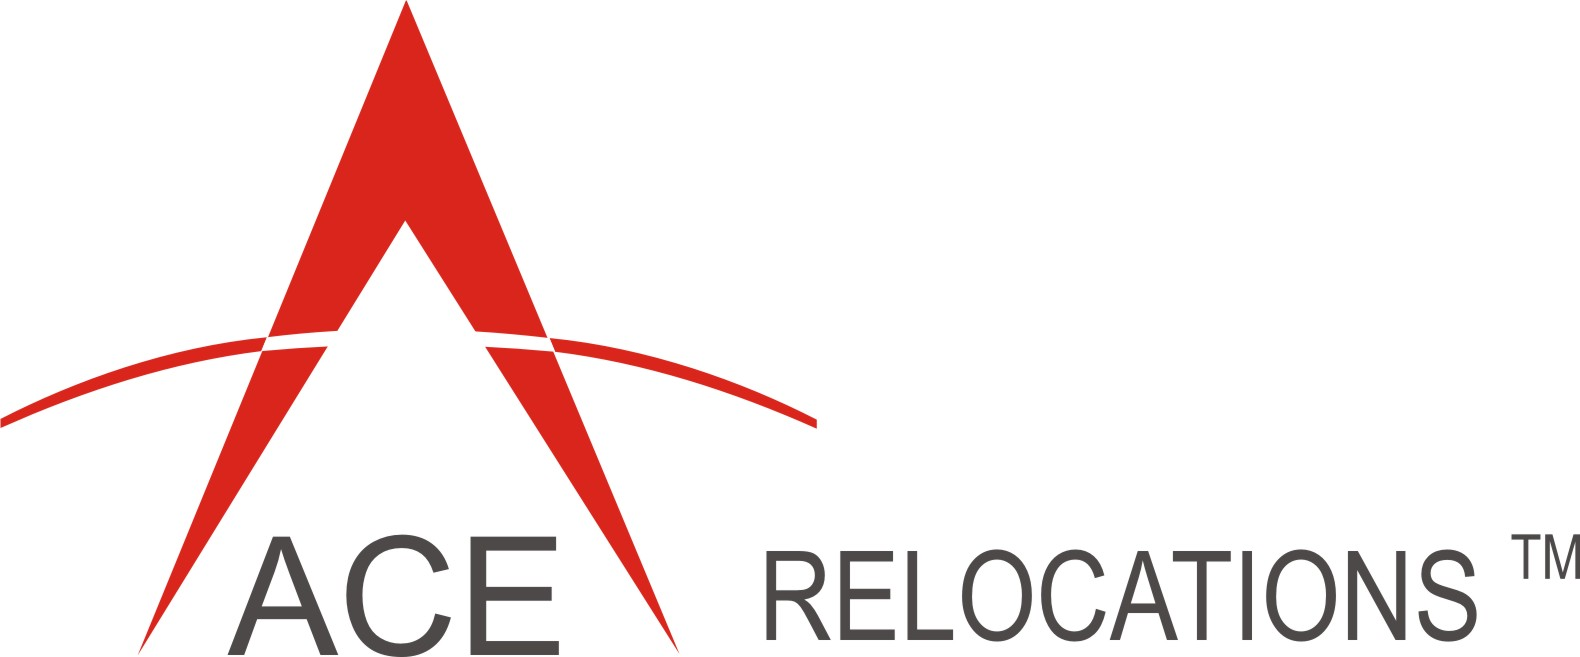 Ace Relocations - logo